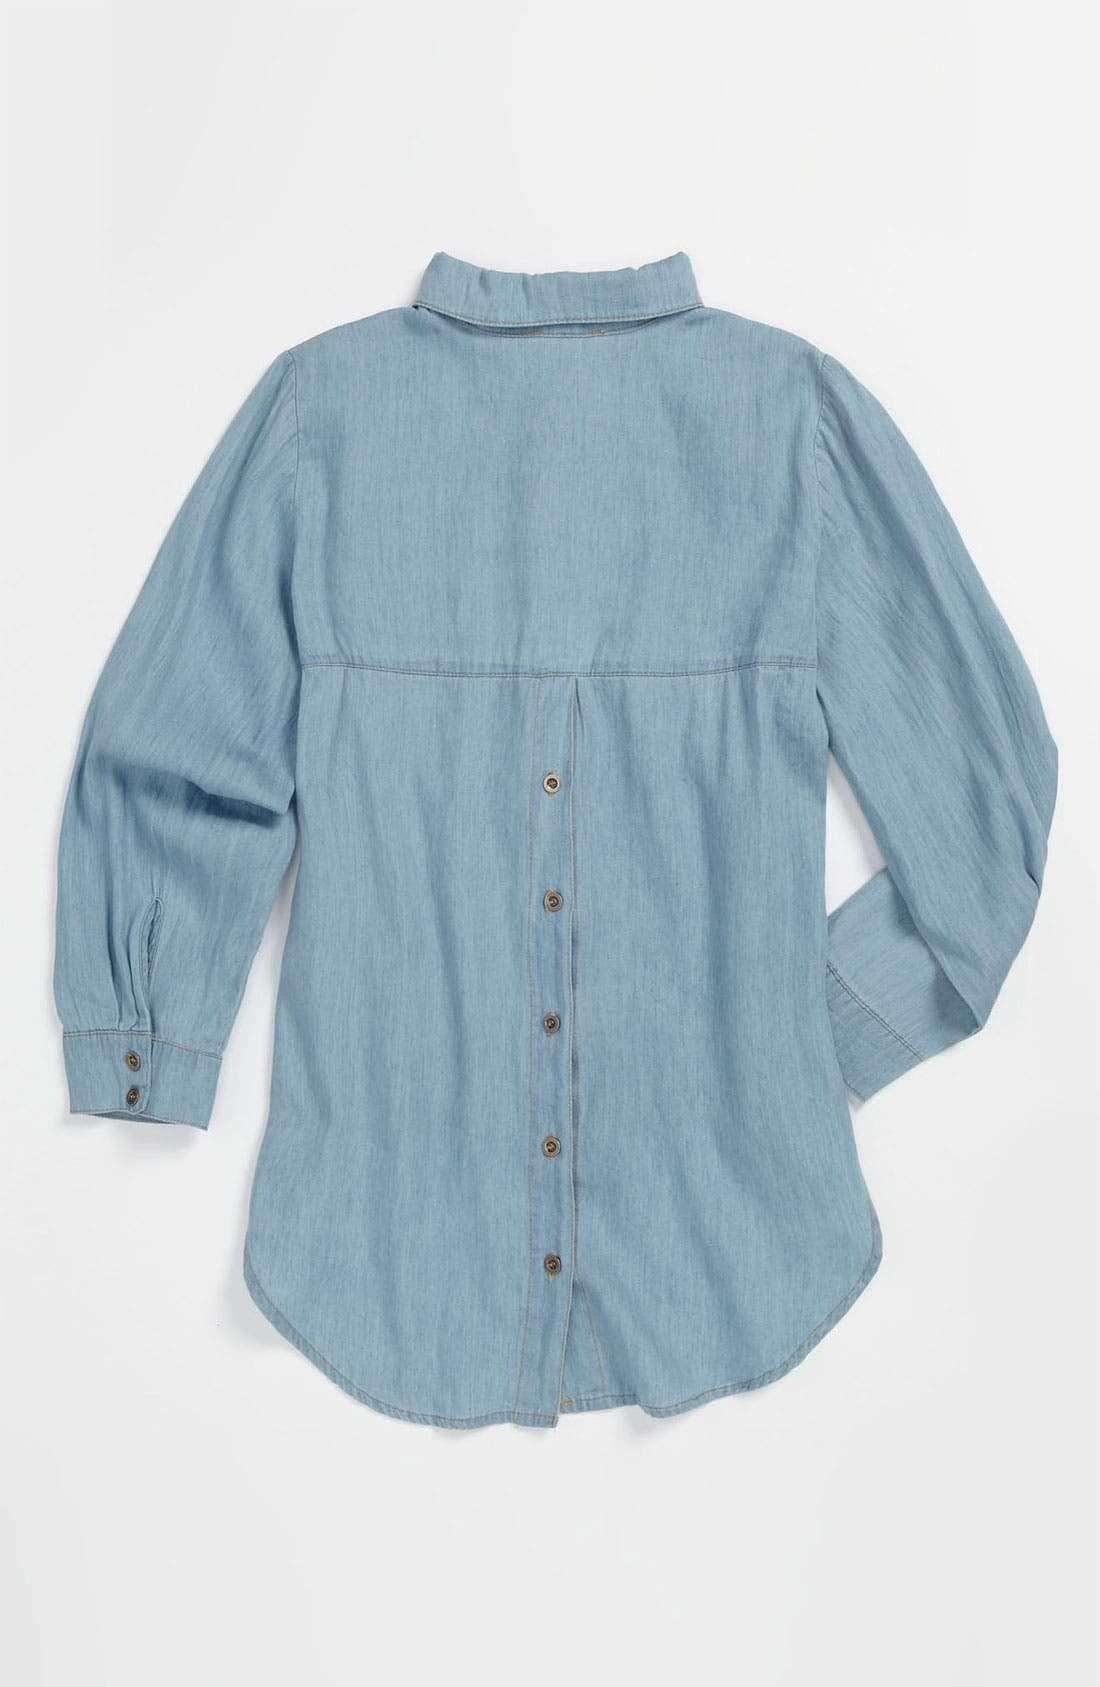 Alternate Image 2  - Mia Chica Chambray Shirt (Big Girls)